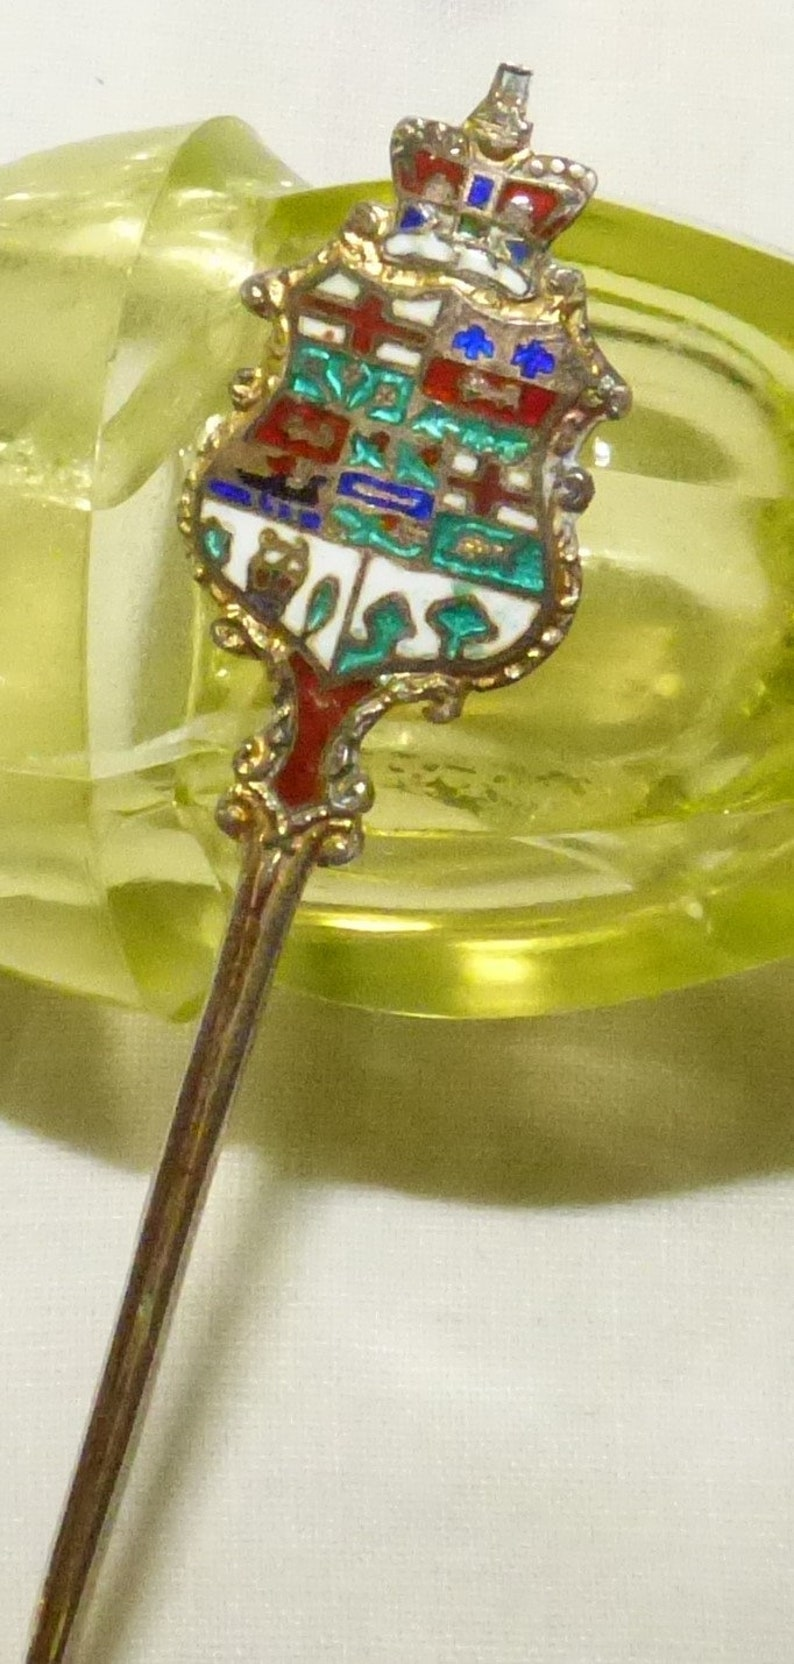 Antique Yarmouth Nova Scotia Sterling Silver Souvenir Demitasse Spoon with Gold Wash and Enamel 1900